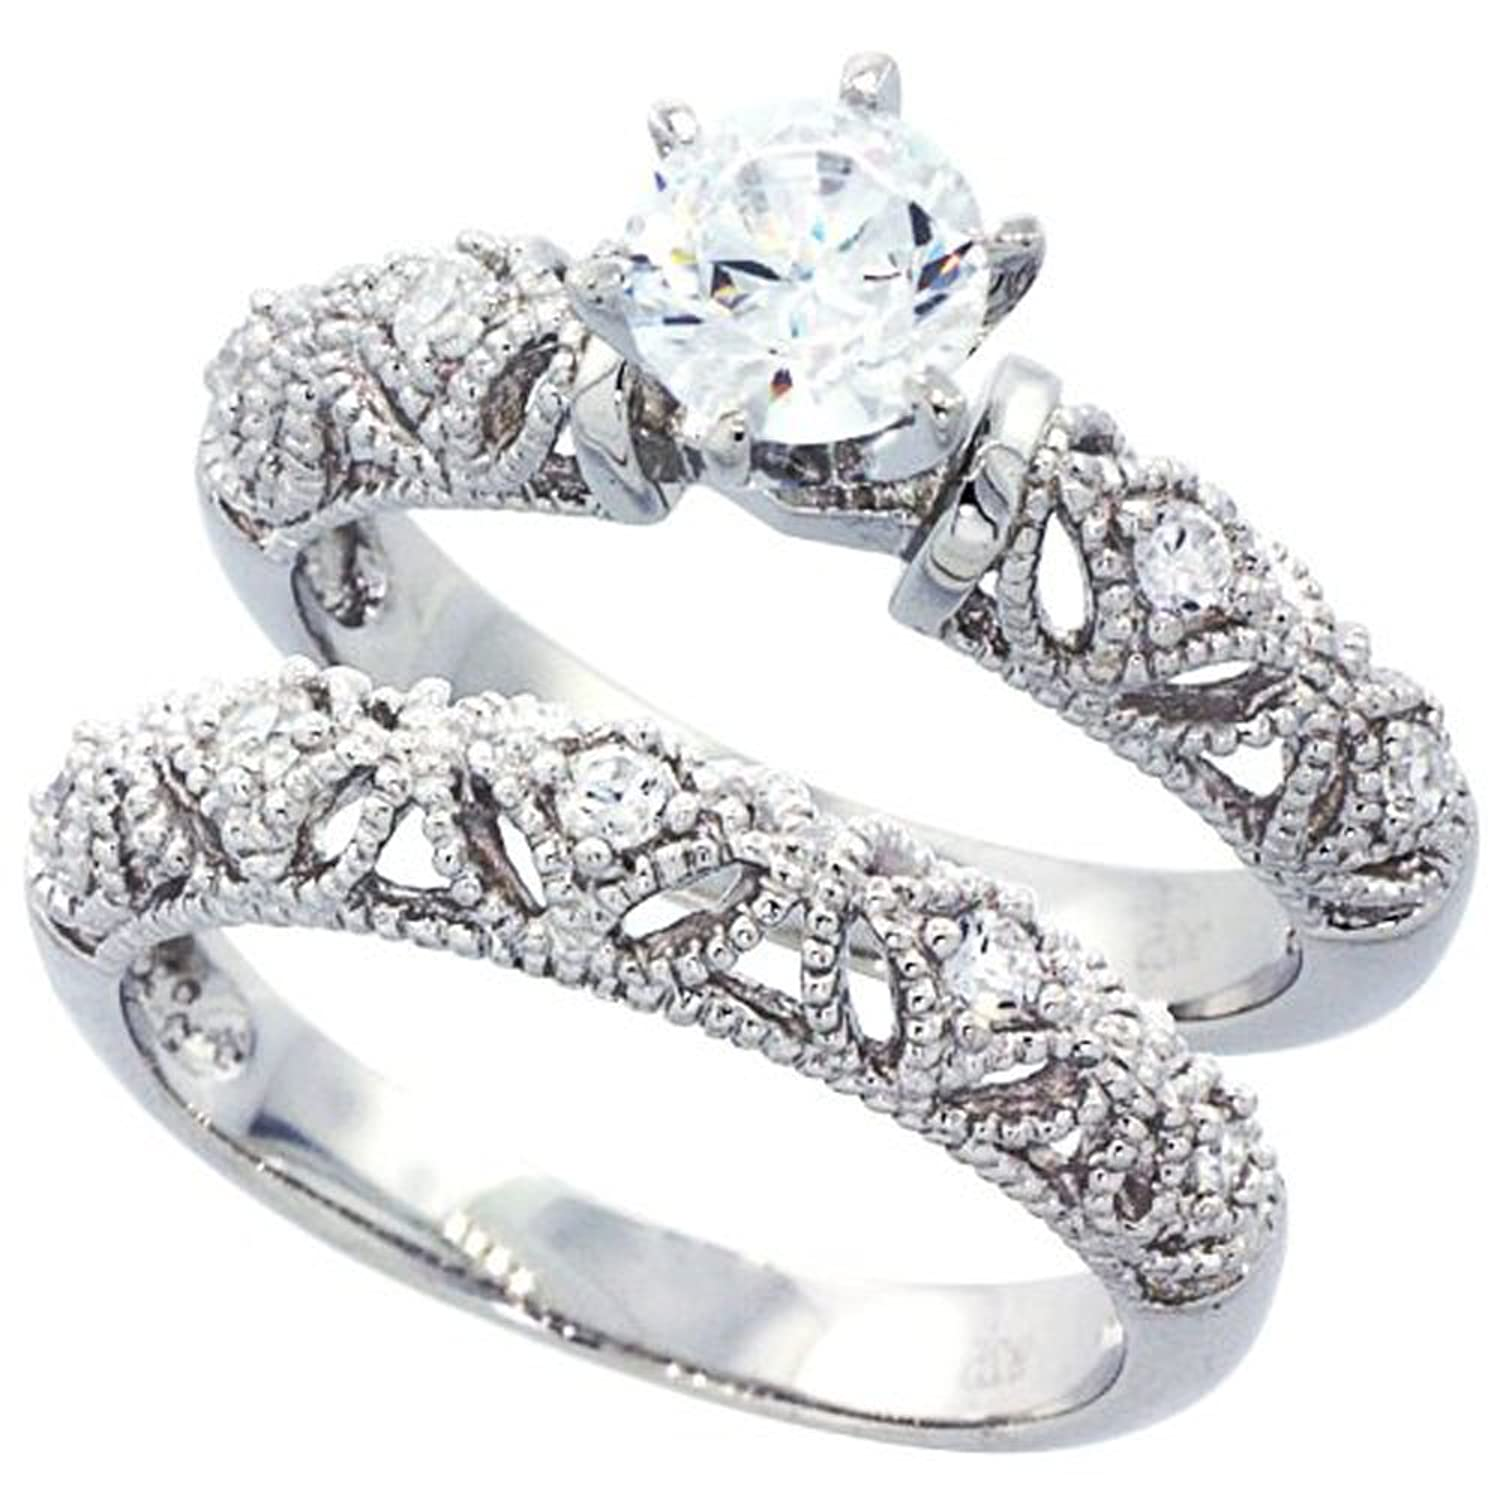 amazoncom sterling silver wedding ring set round cz engagement ring 2pcs vintage bridal sets size 5 to 10 jewelry - Woman Wedding Rings